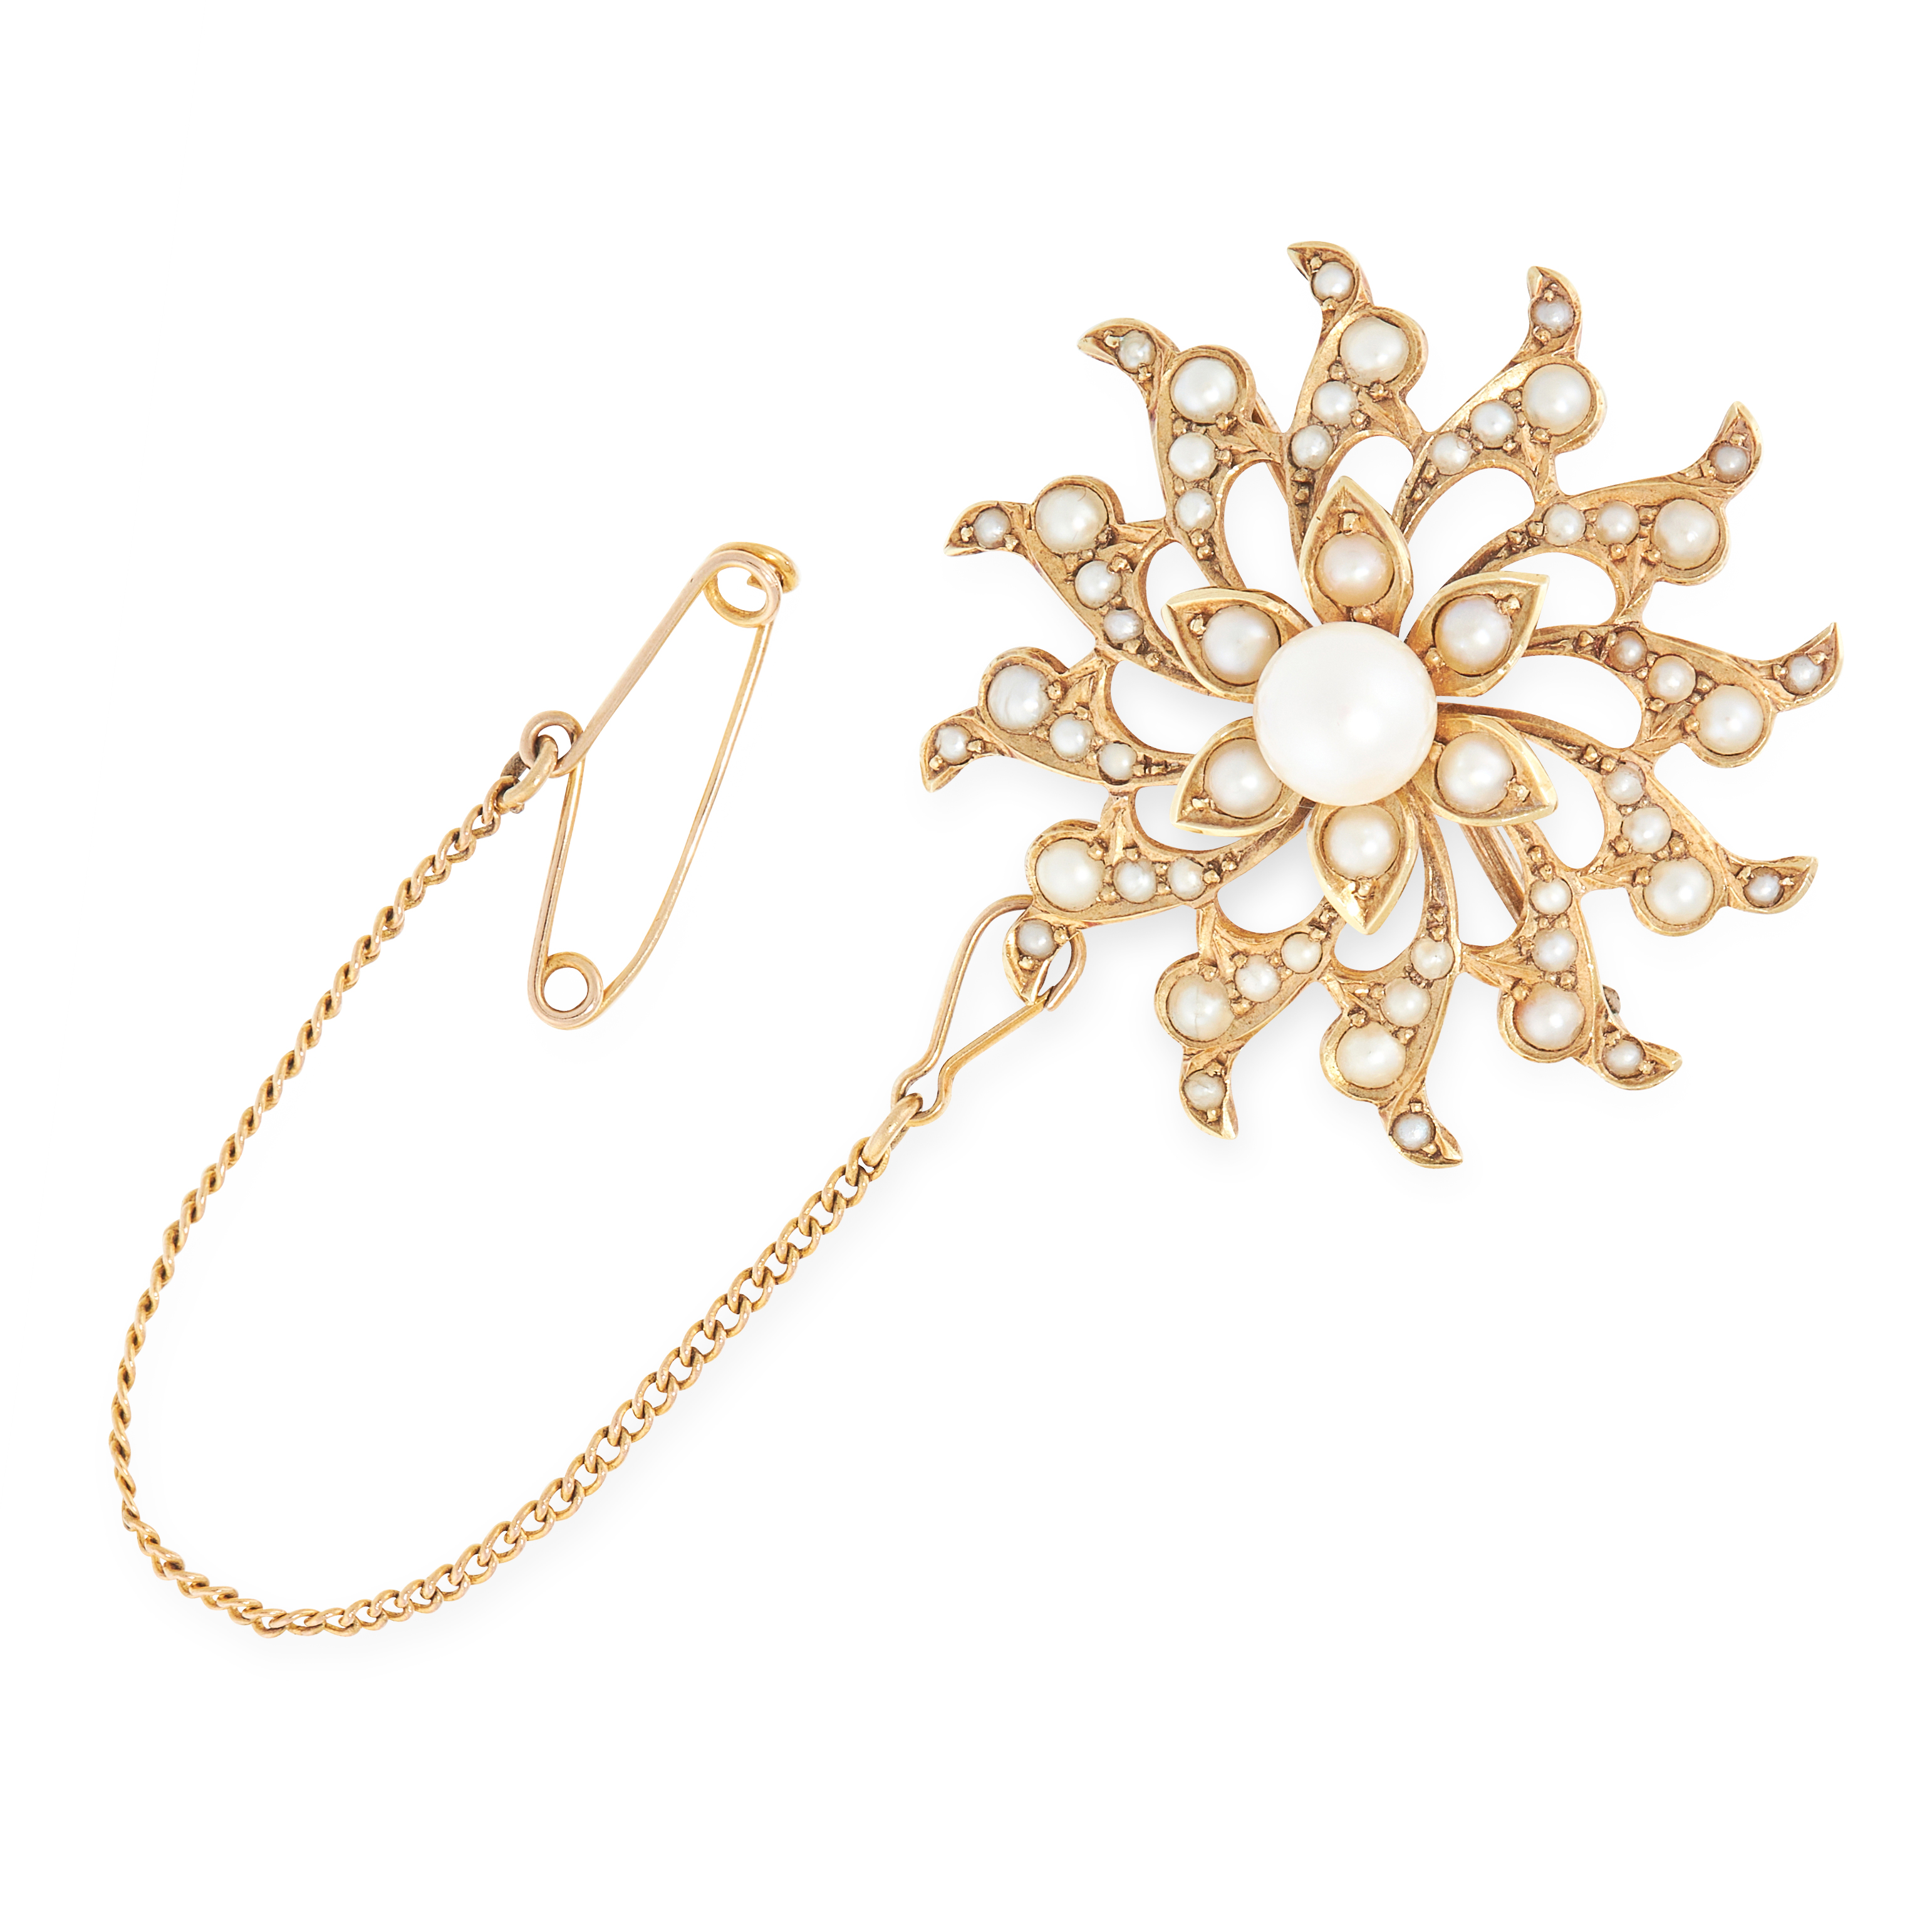 ANTIQUE VICTORIAN PEARL STAR / SUN BROOCH / PENDANT in 15ct yellow gold, designed as a star with